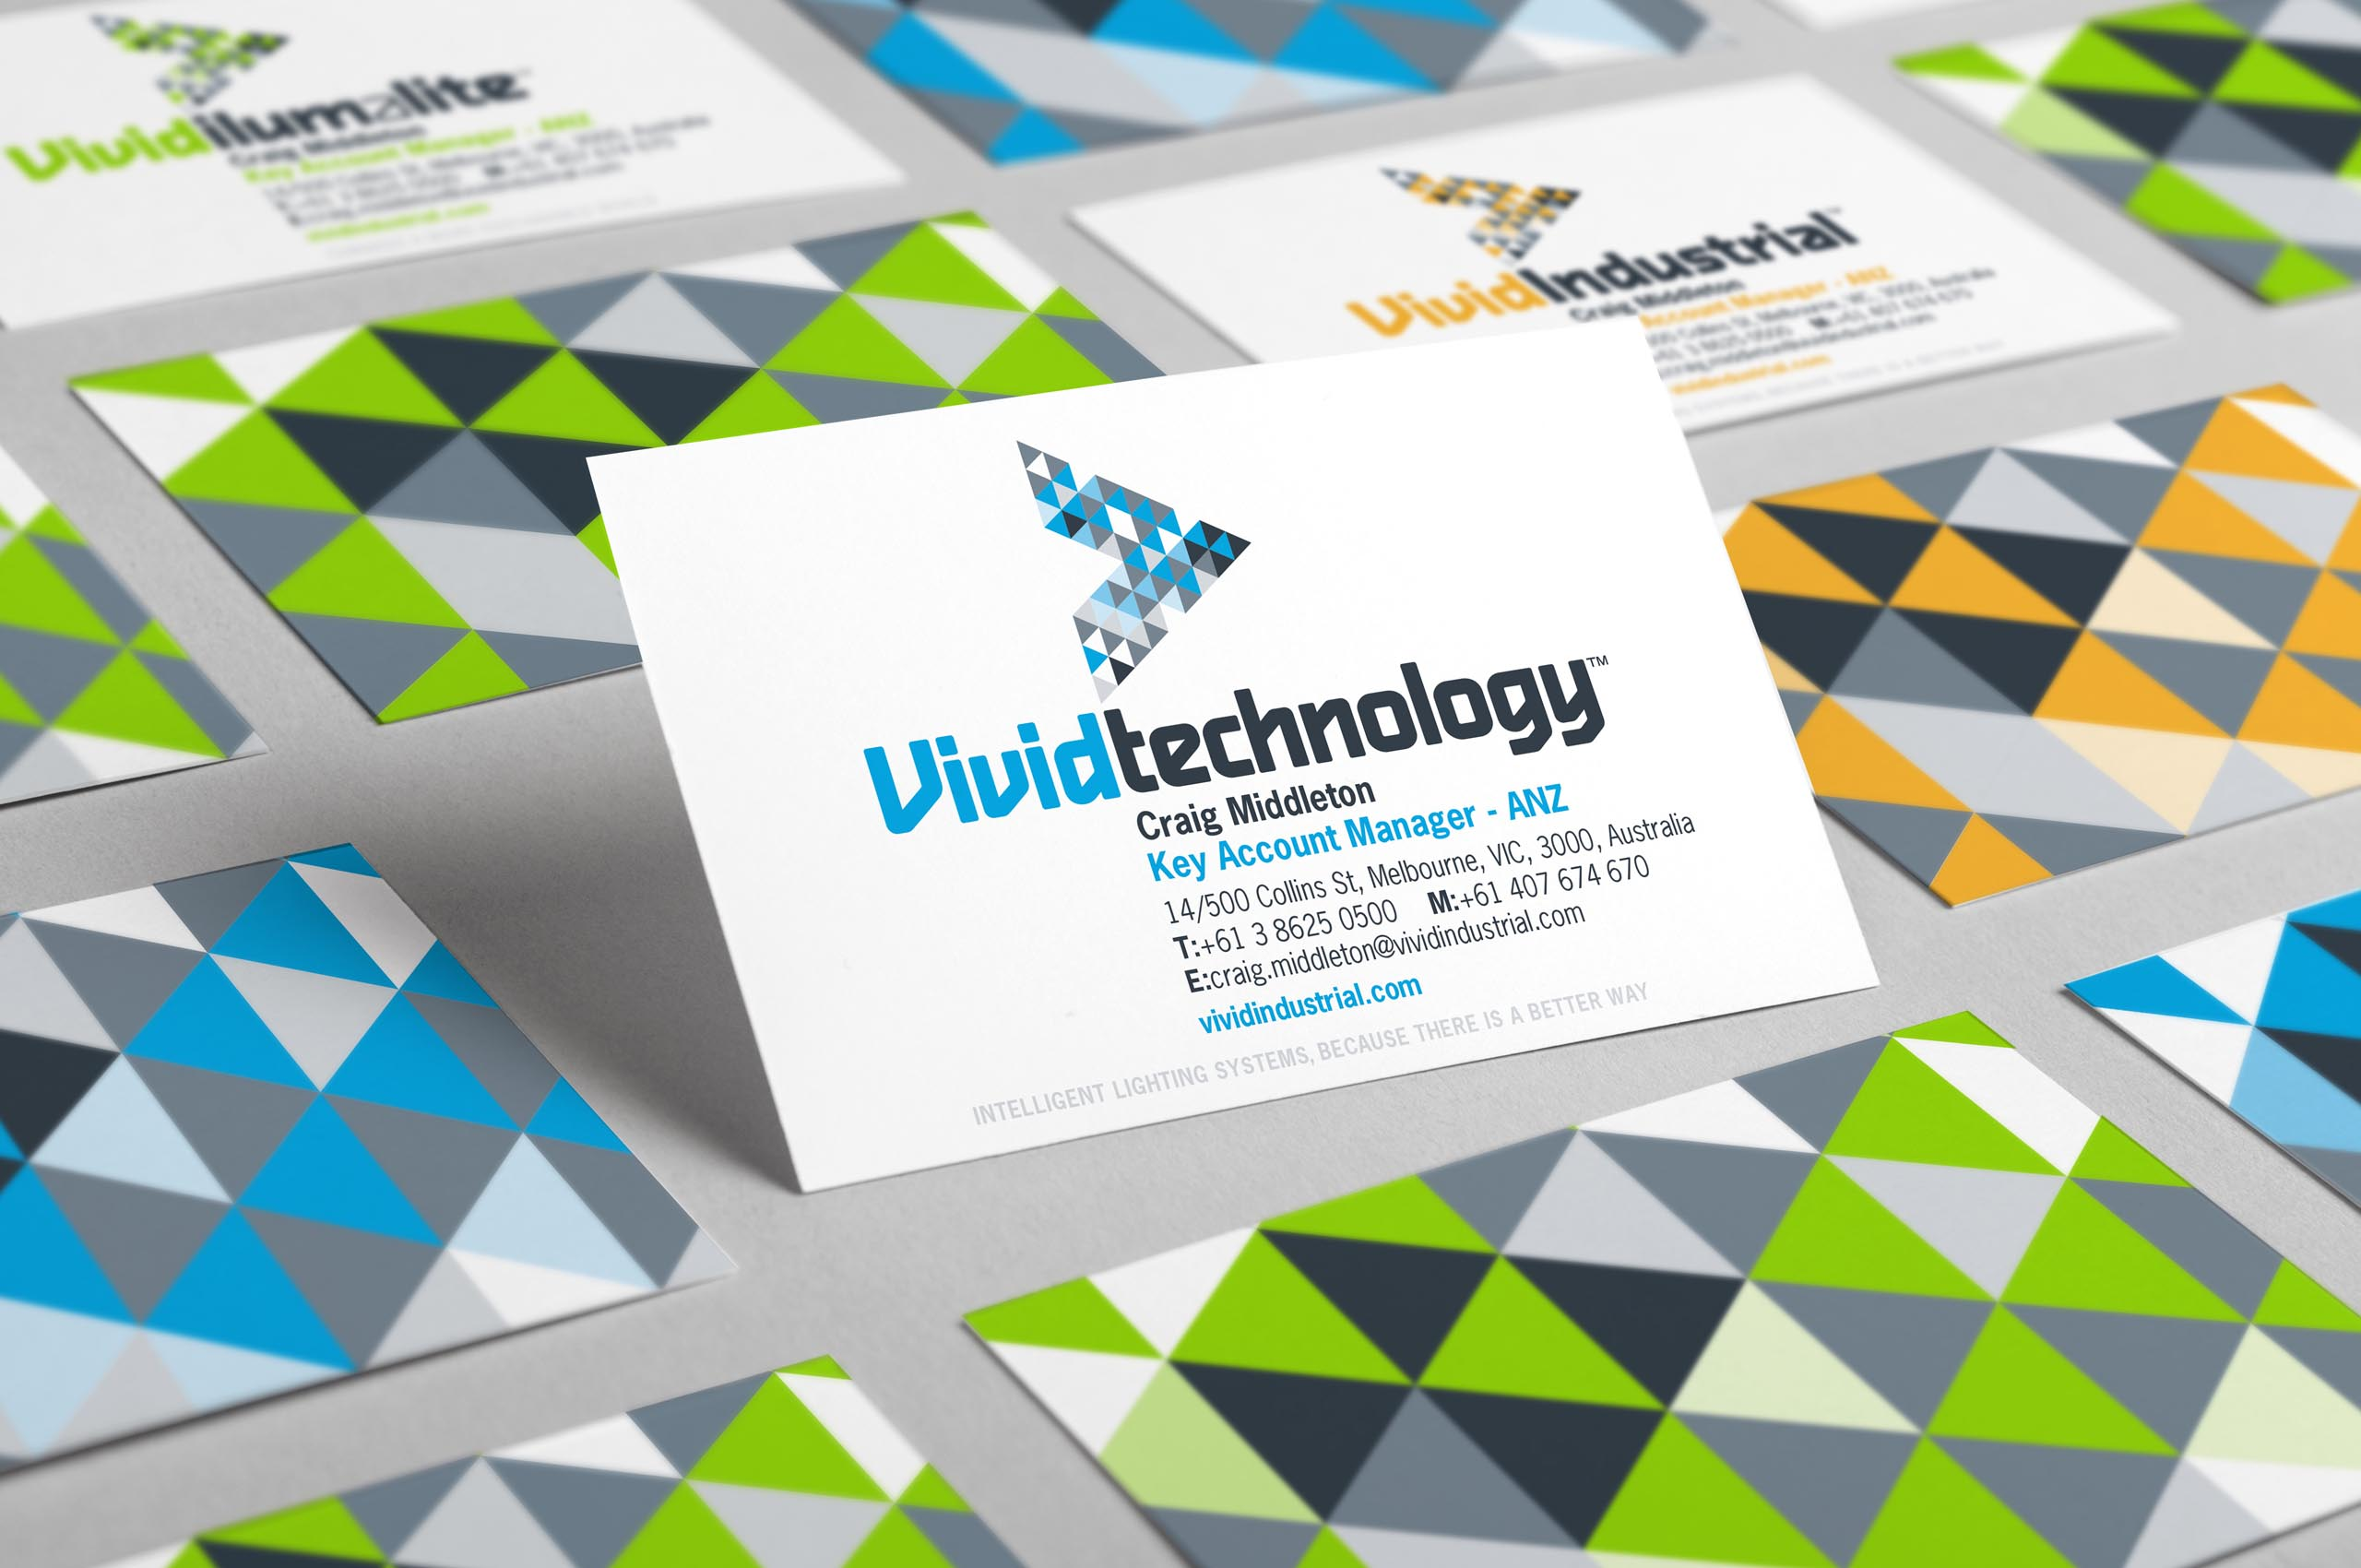 Businesscard image